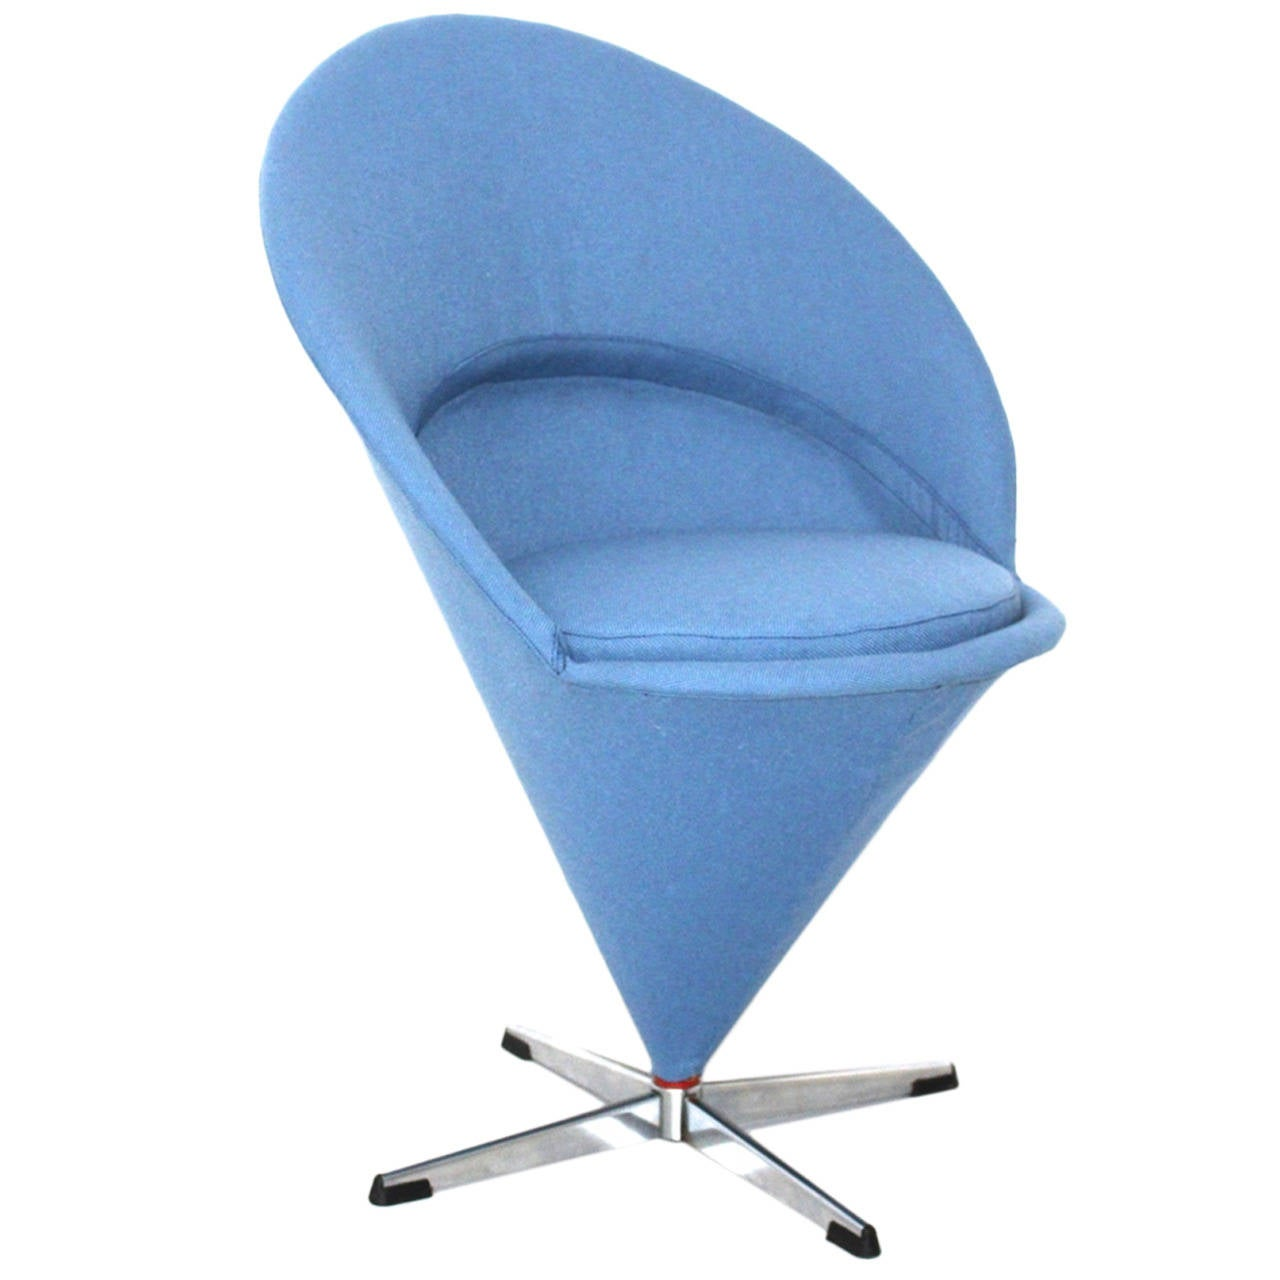 Blue Scandinavian Modern Cone Chair By Verner Panton Denmark 1958 1